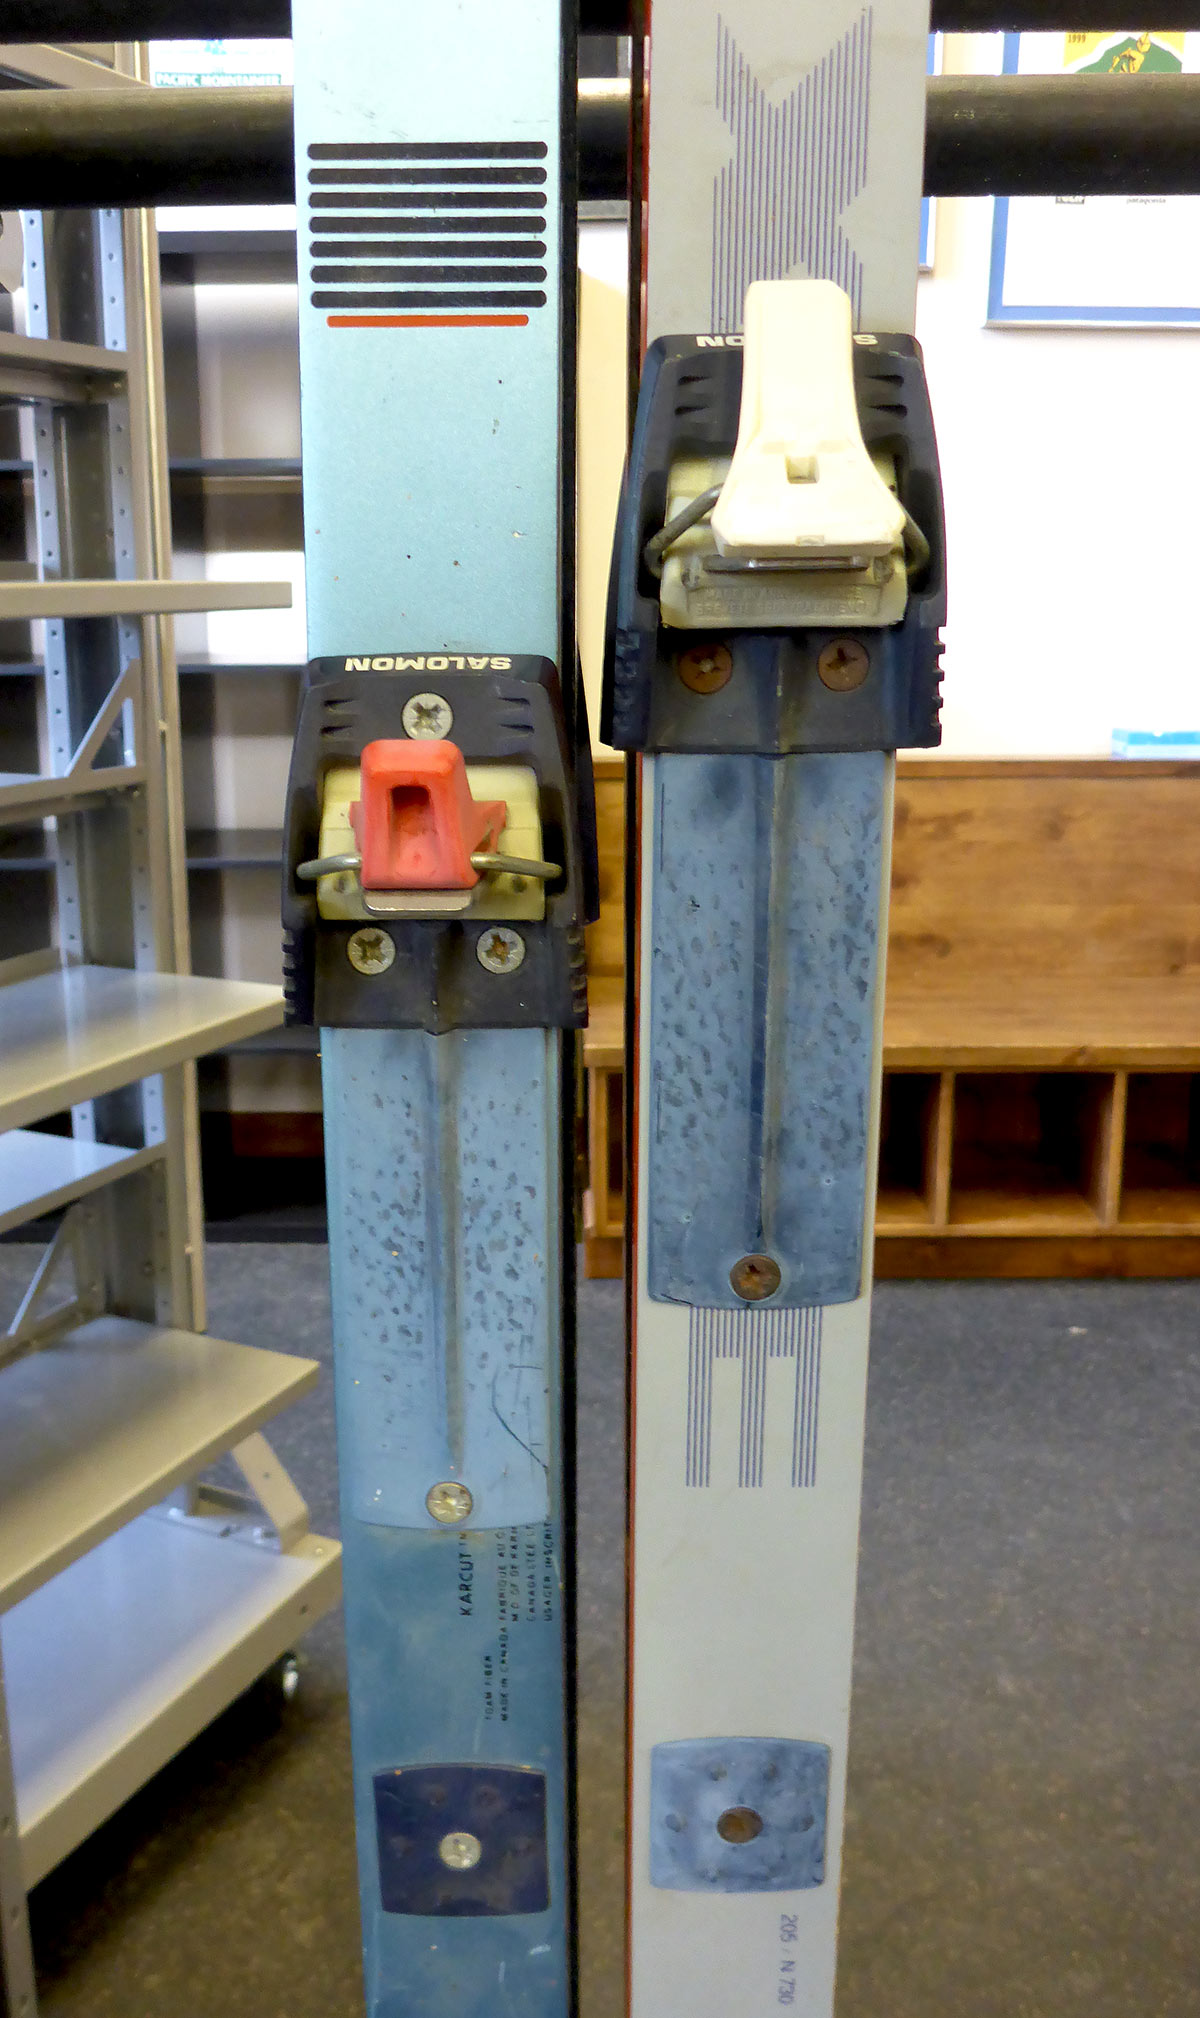 These types of skis and bindings need to be permanently retired. Do yourself a favor and invest in some new gear if this is similar to what your current setup is. © Jared Manninen